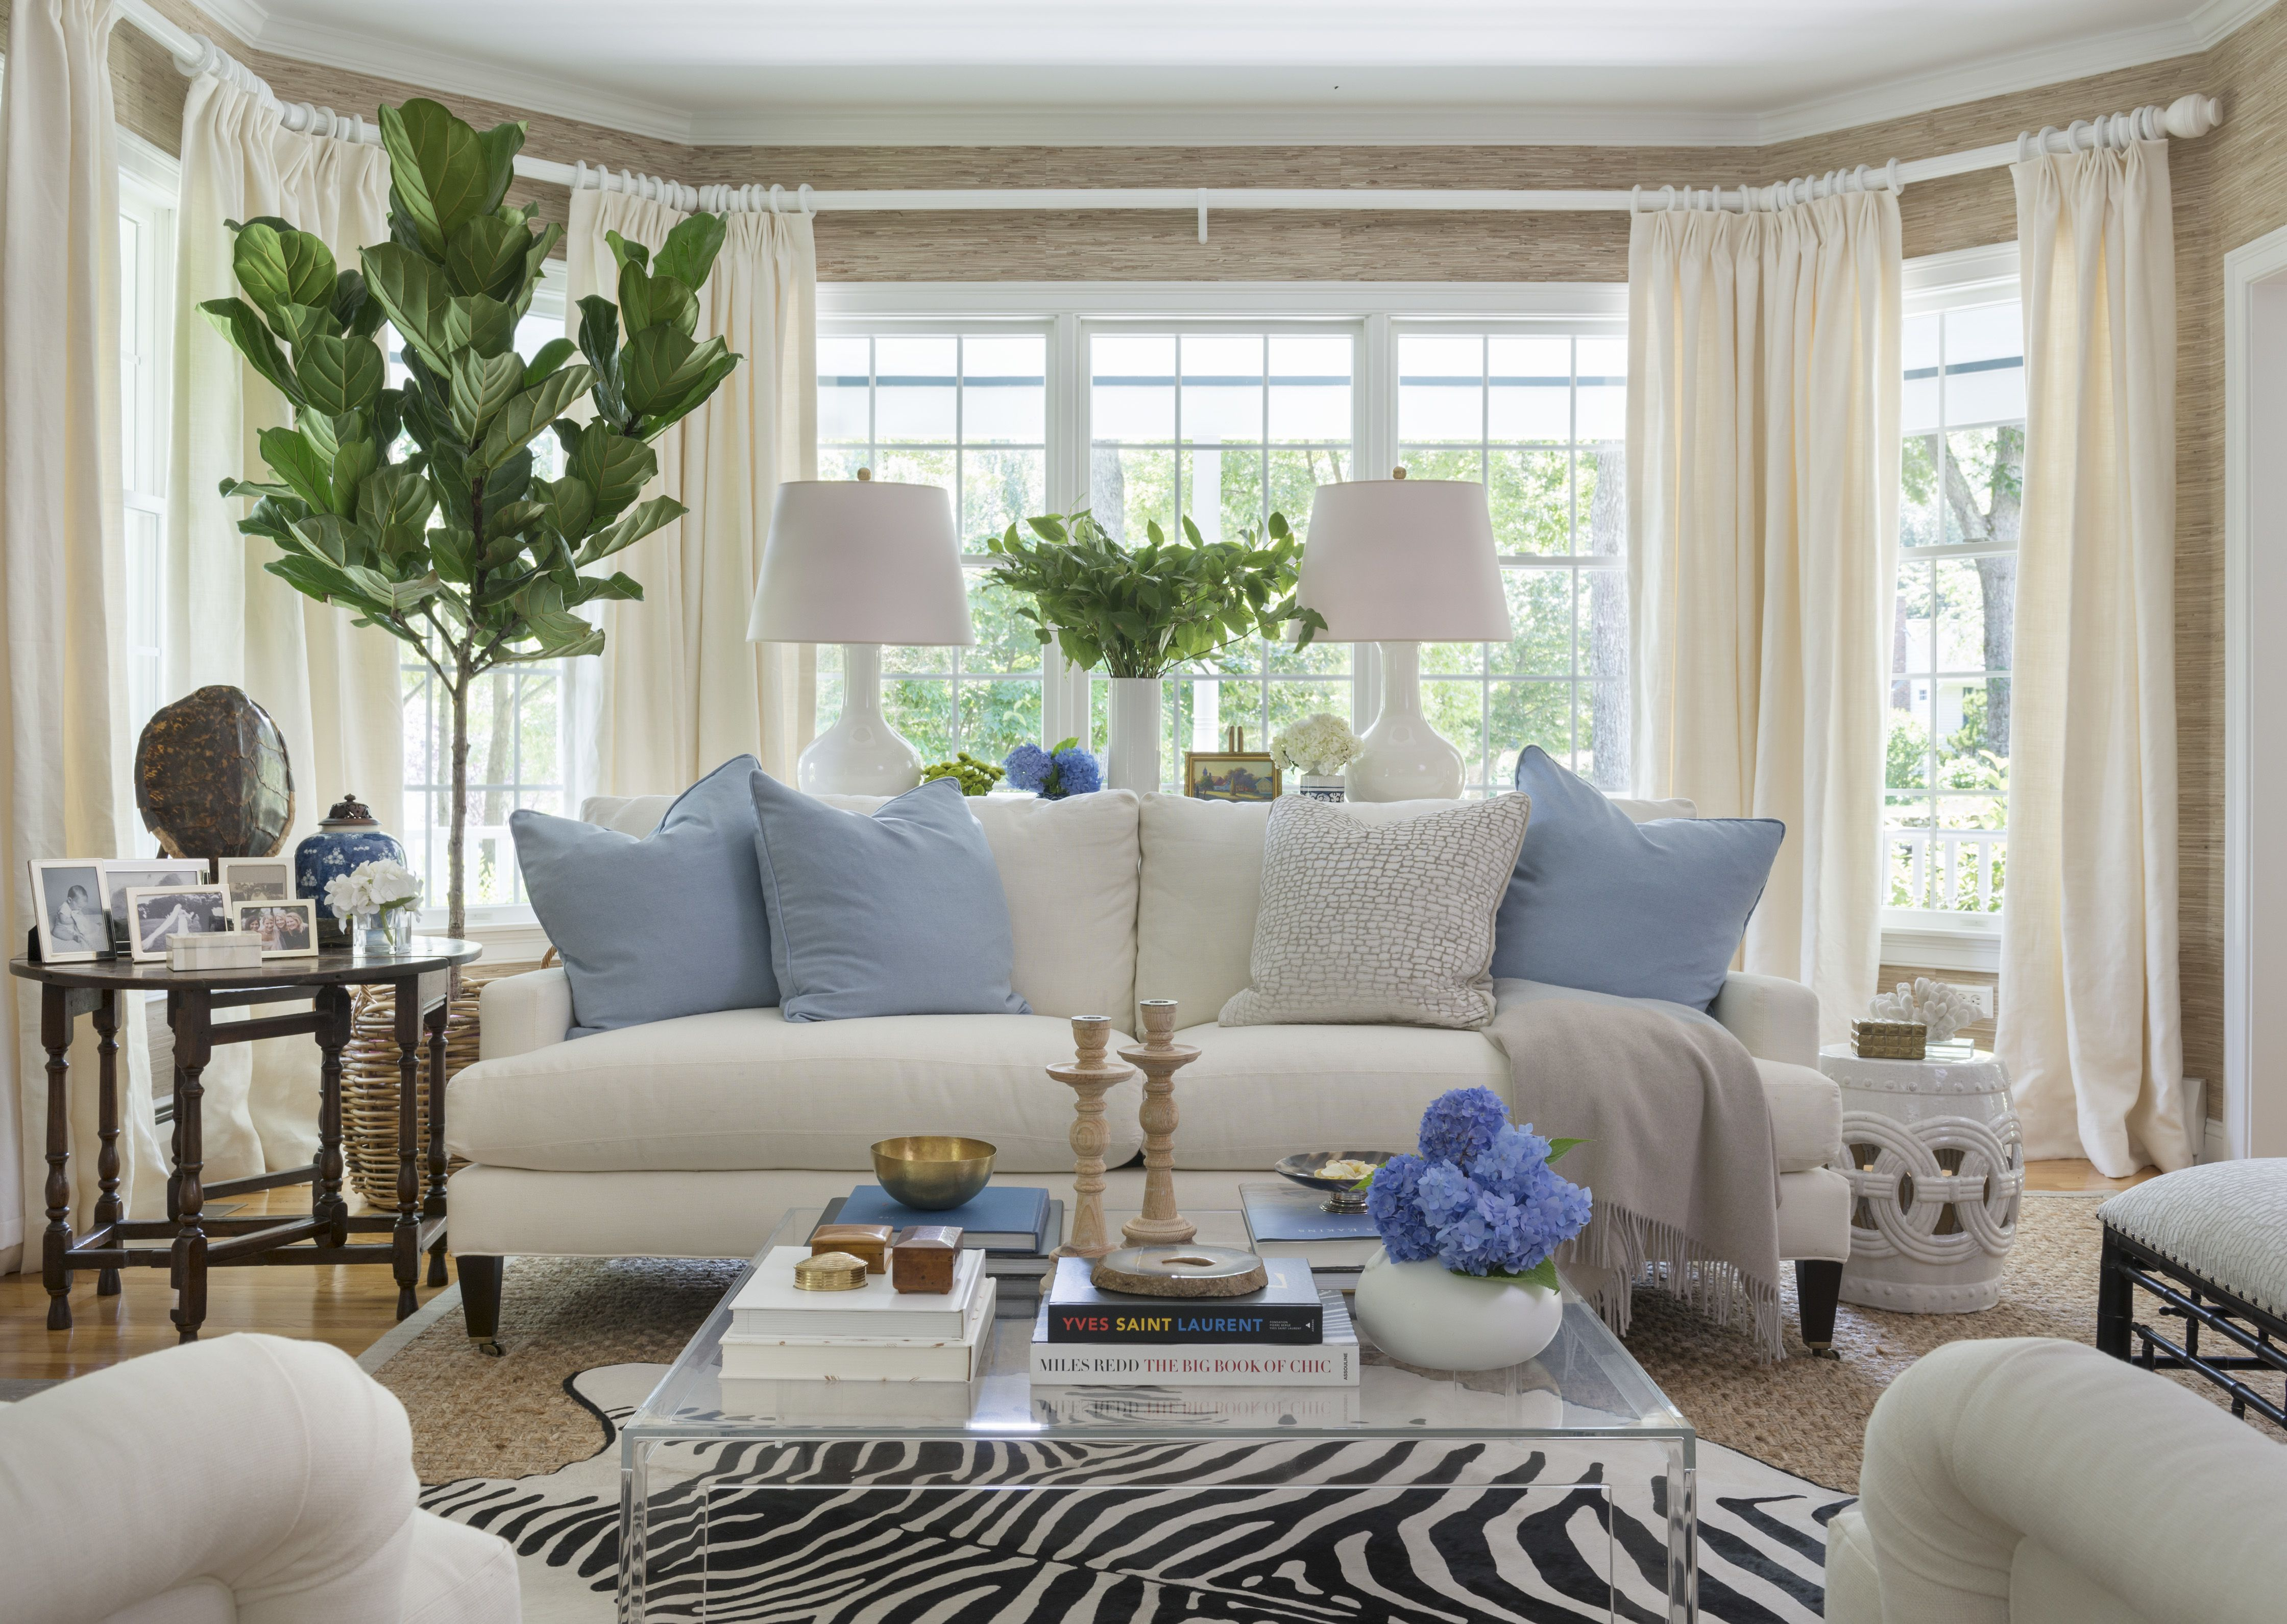 stylist better homes and gardens living room furniture. Living room Kate Jackson Design  everything but the zebra rug yuck Love acrylic table and garden stool Beautiful light